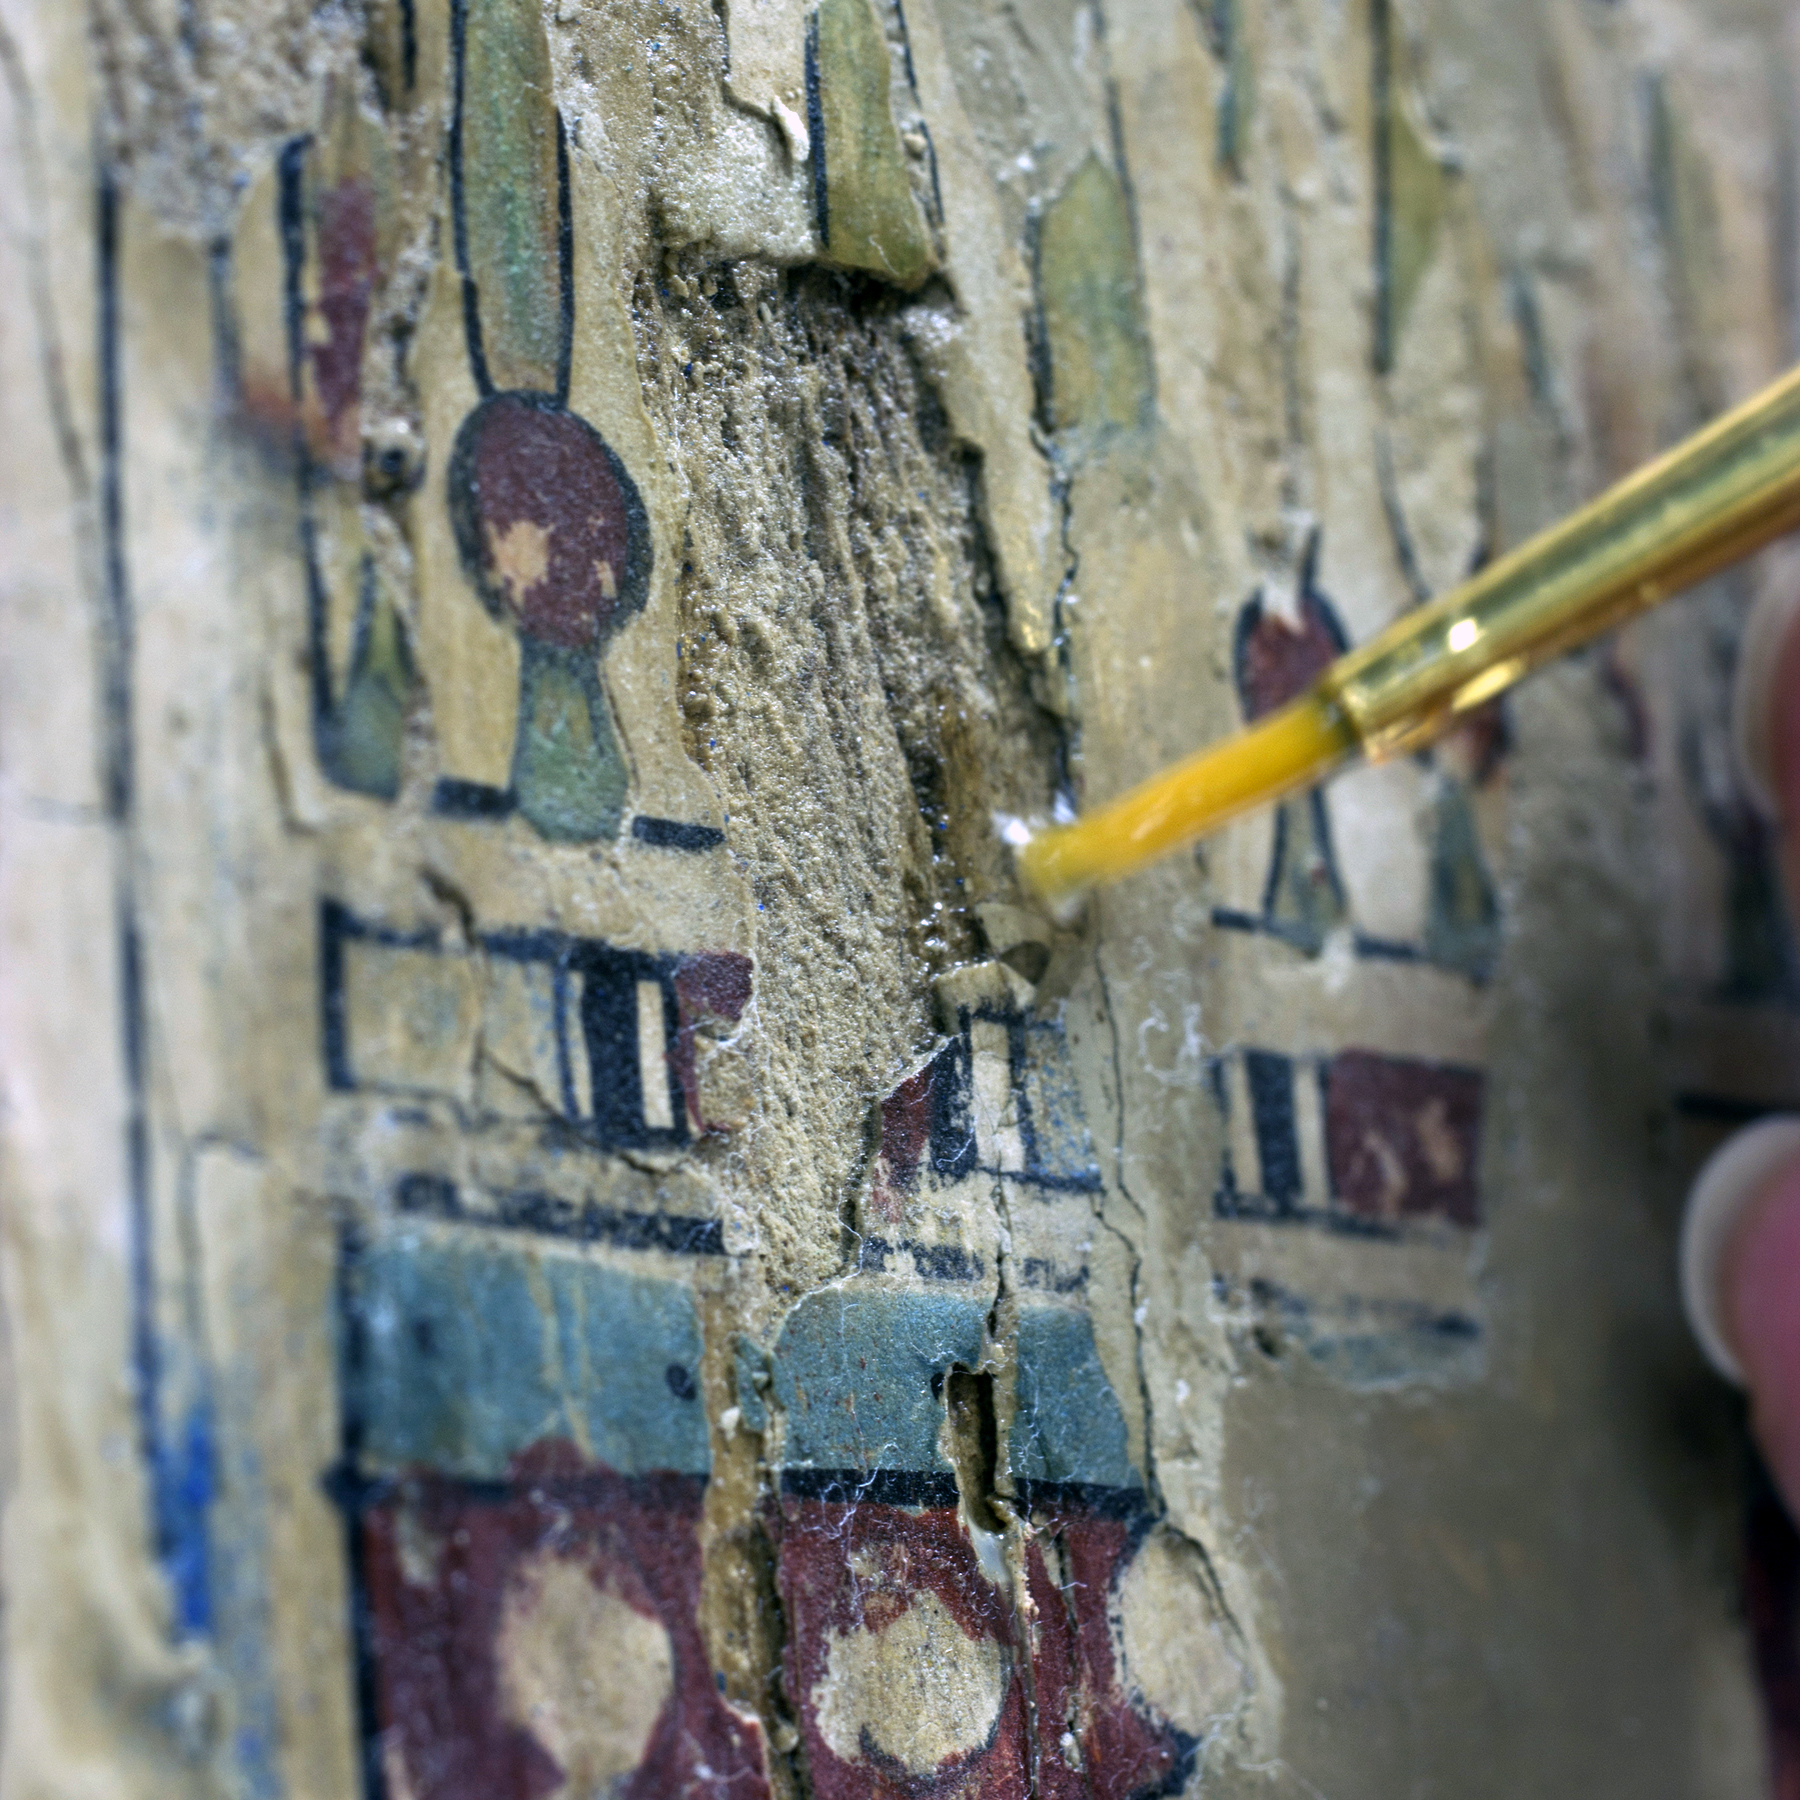 Conservator uses a paintbrush to treat a piece of art